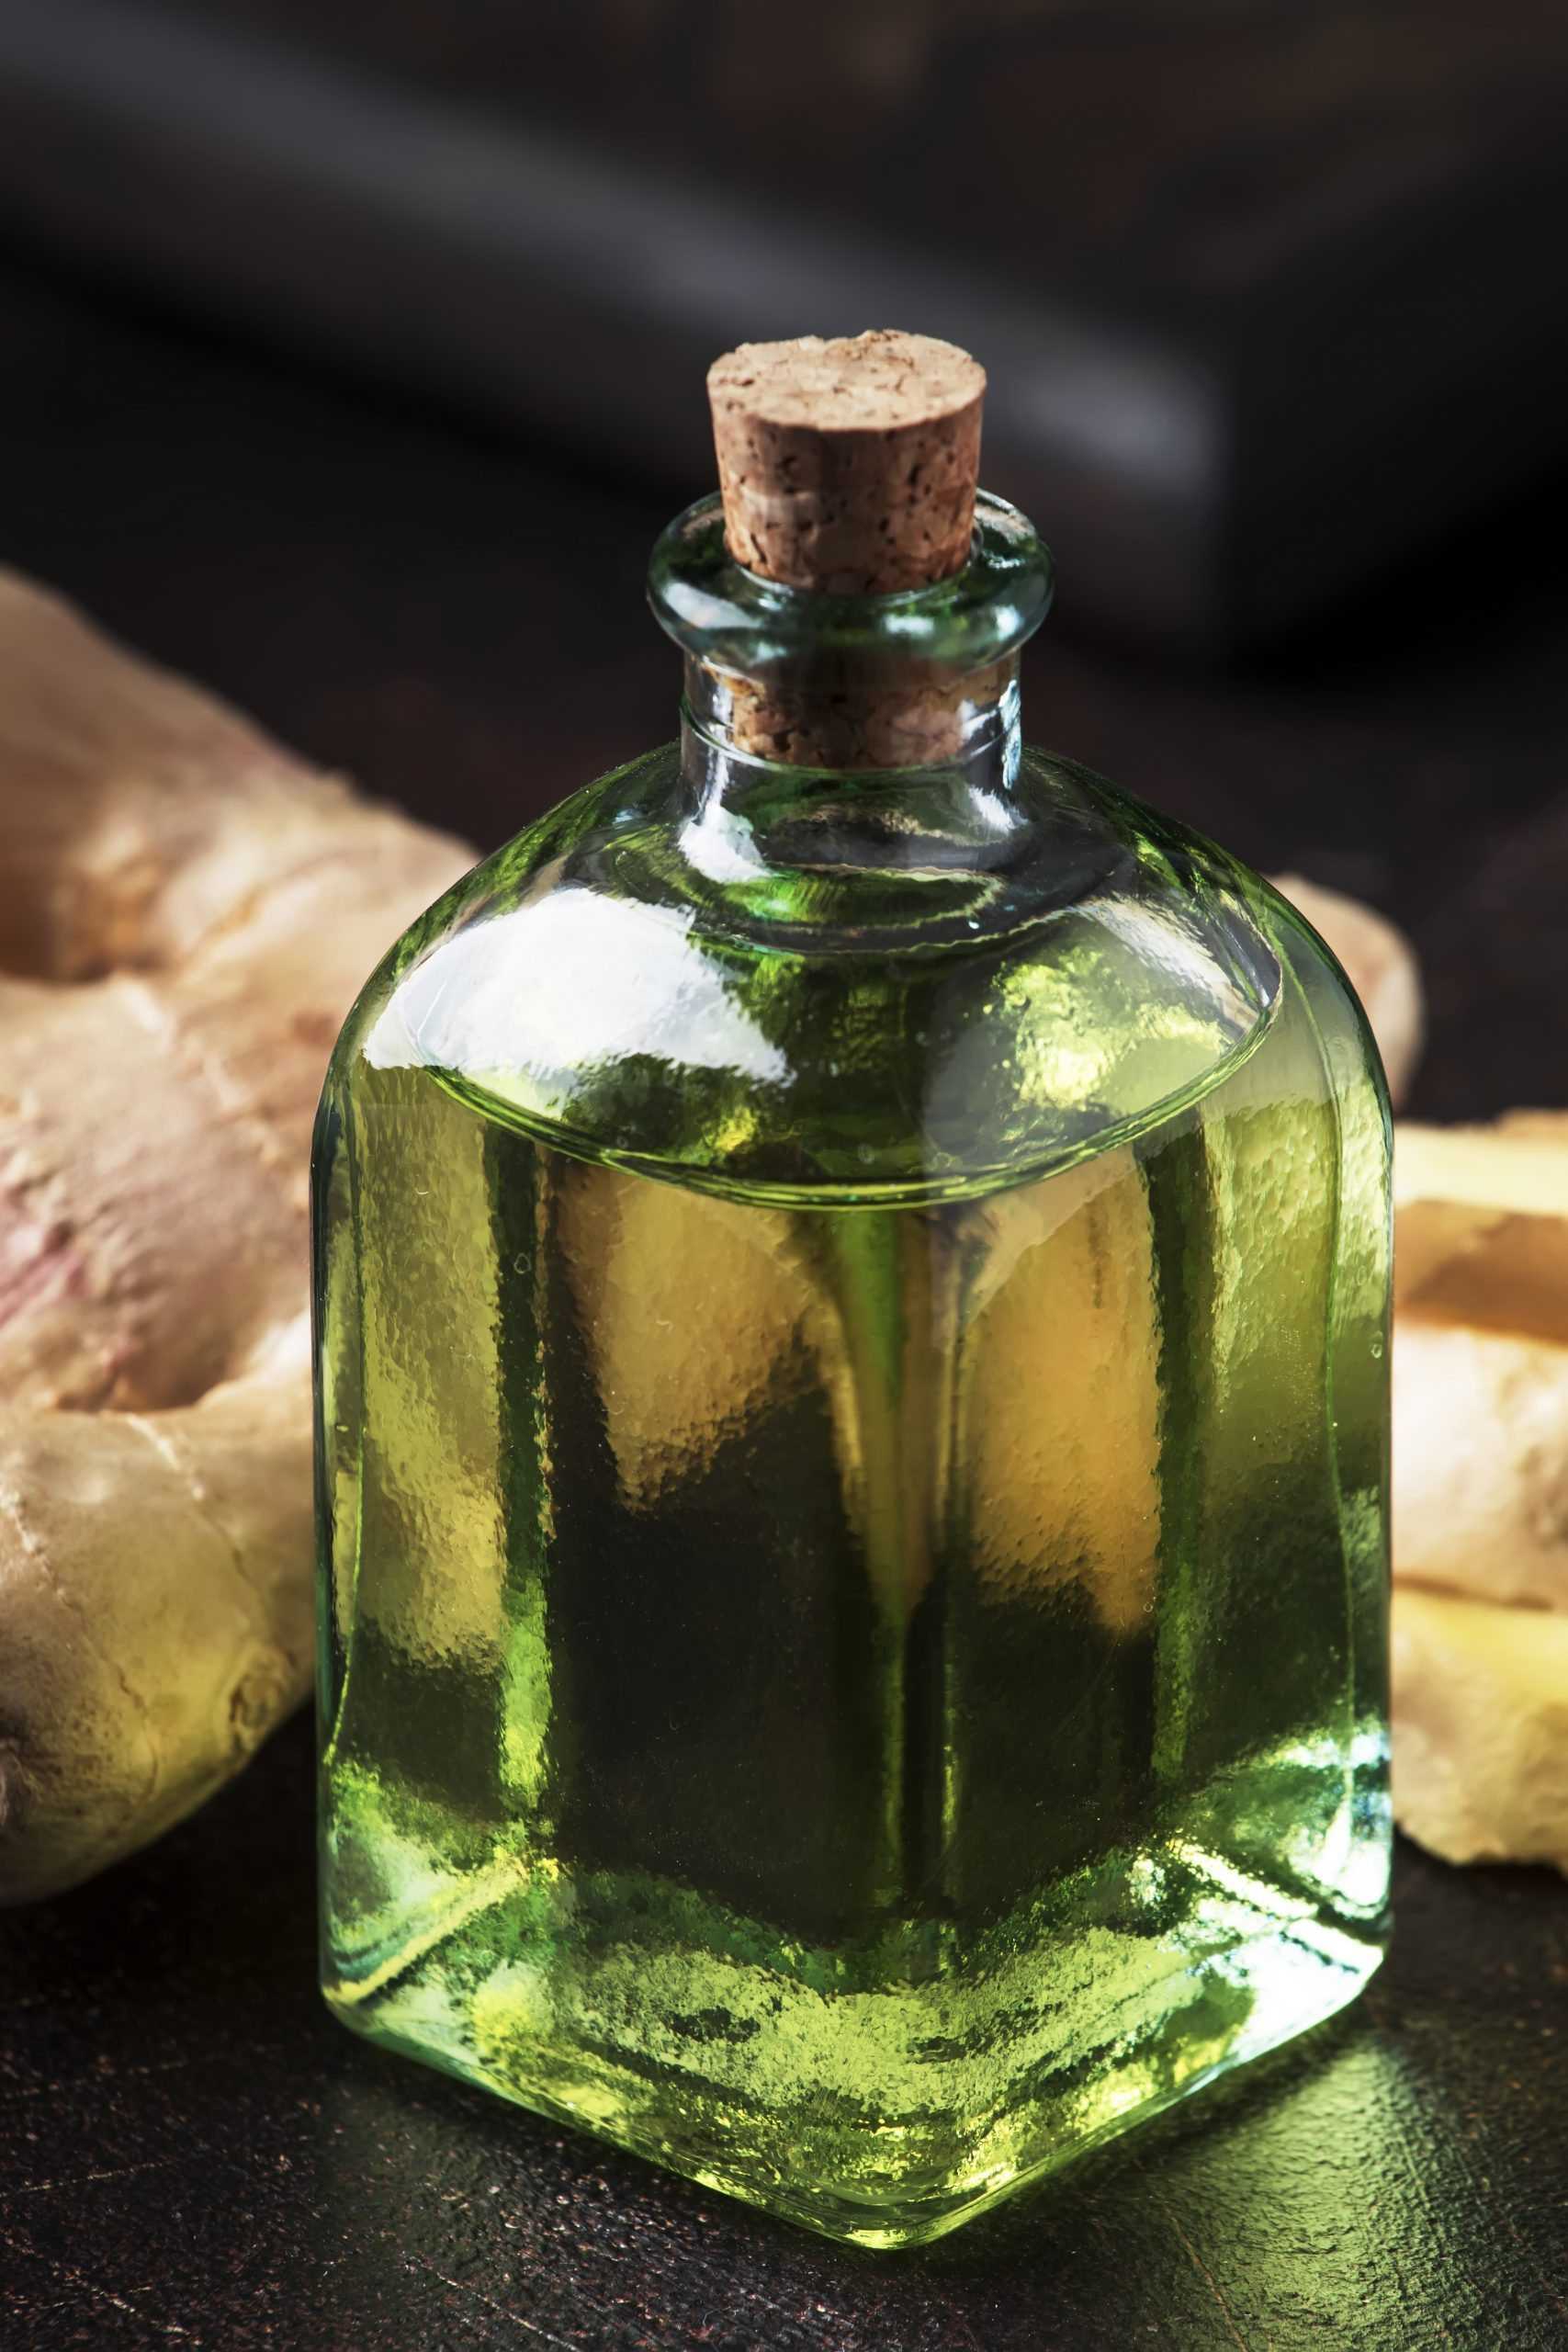 Ginger oil and fresh ginger root, dark table, selective focus